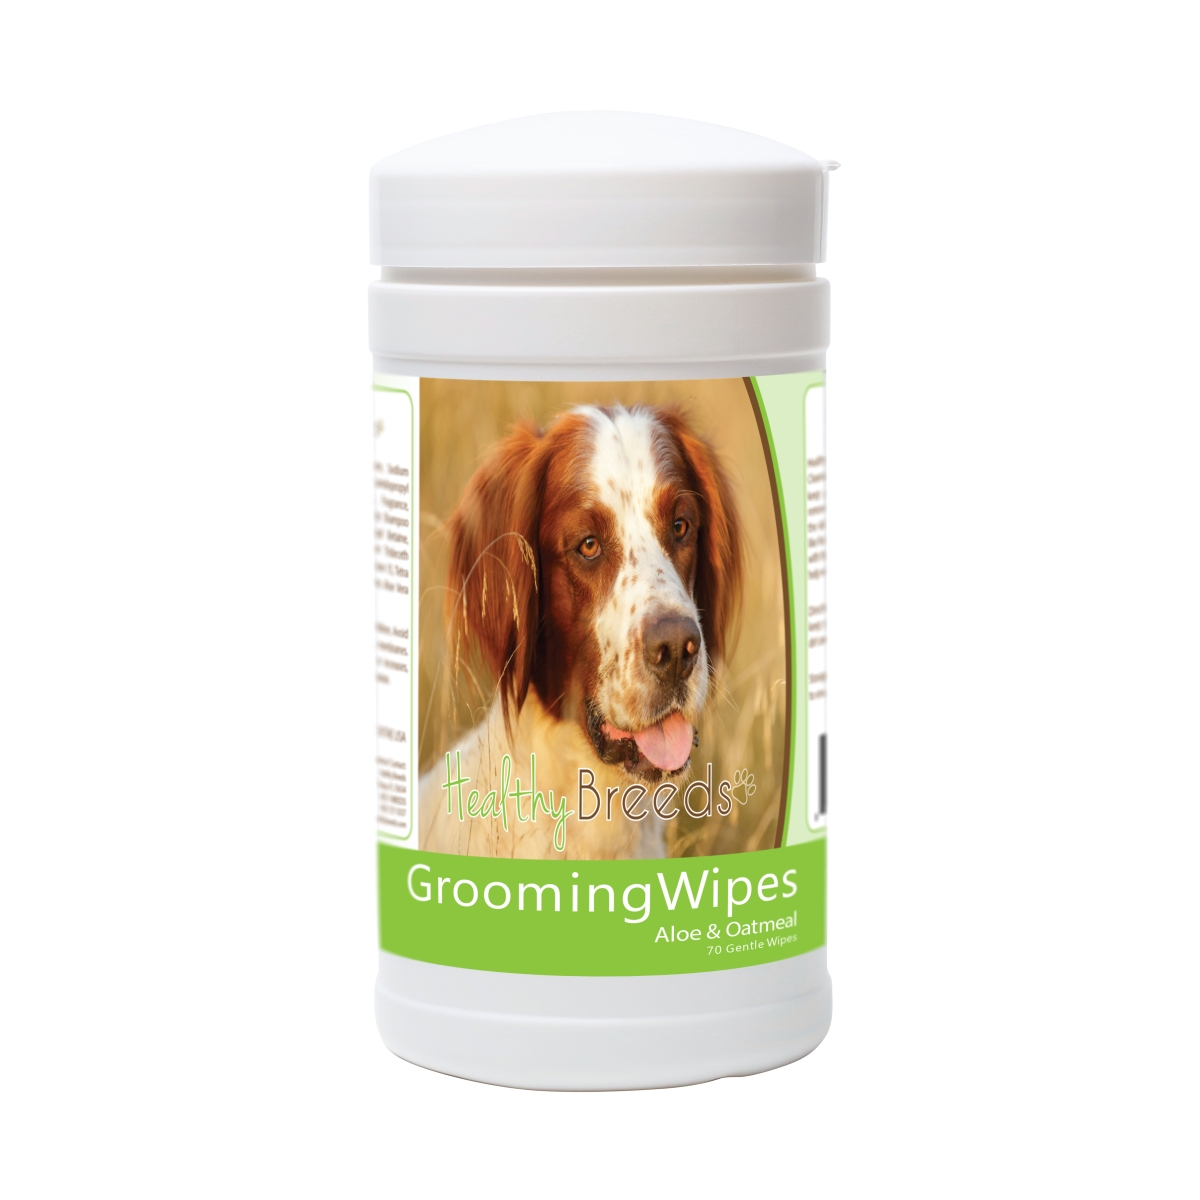 Healthy Breeds 840235175056 Irish Red & White Setter Grooming Wipes - 70 Count